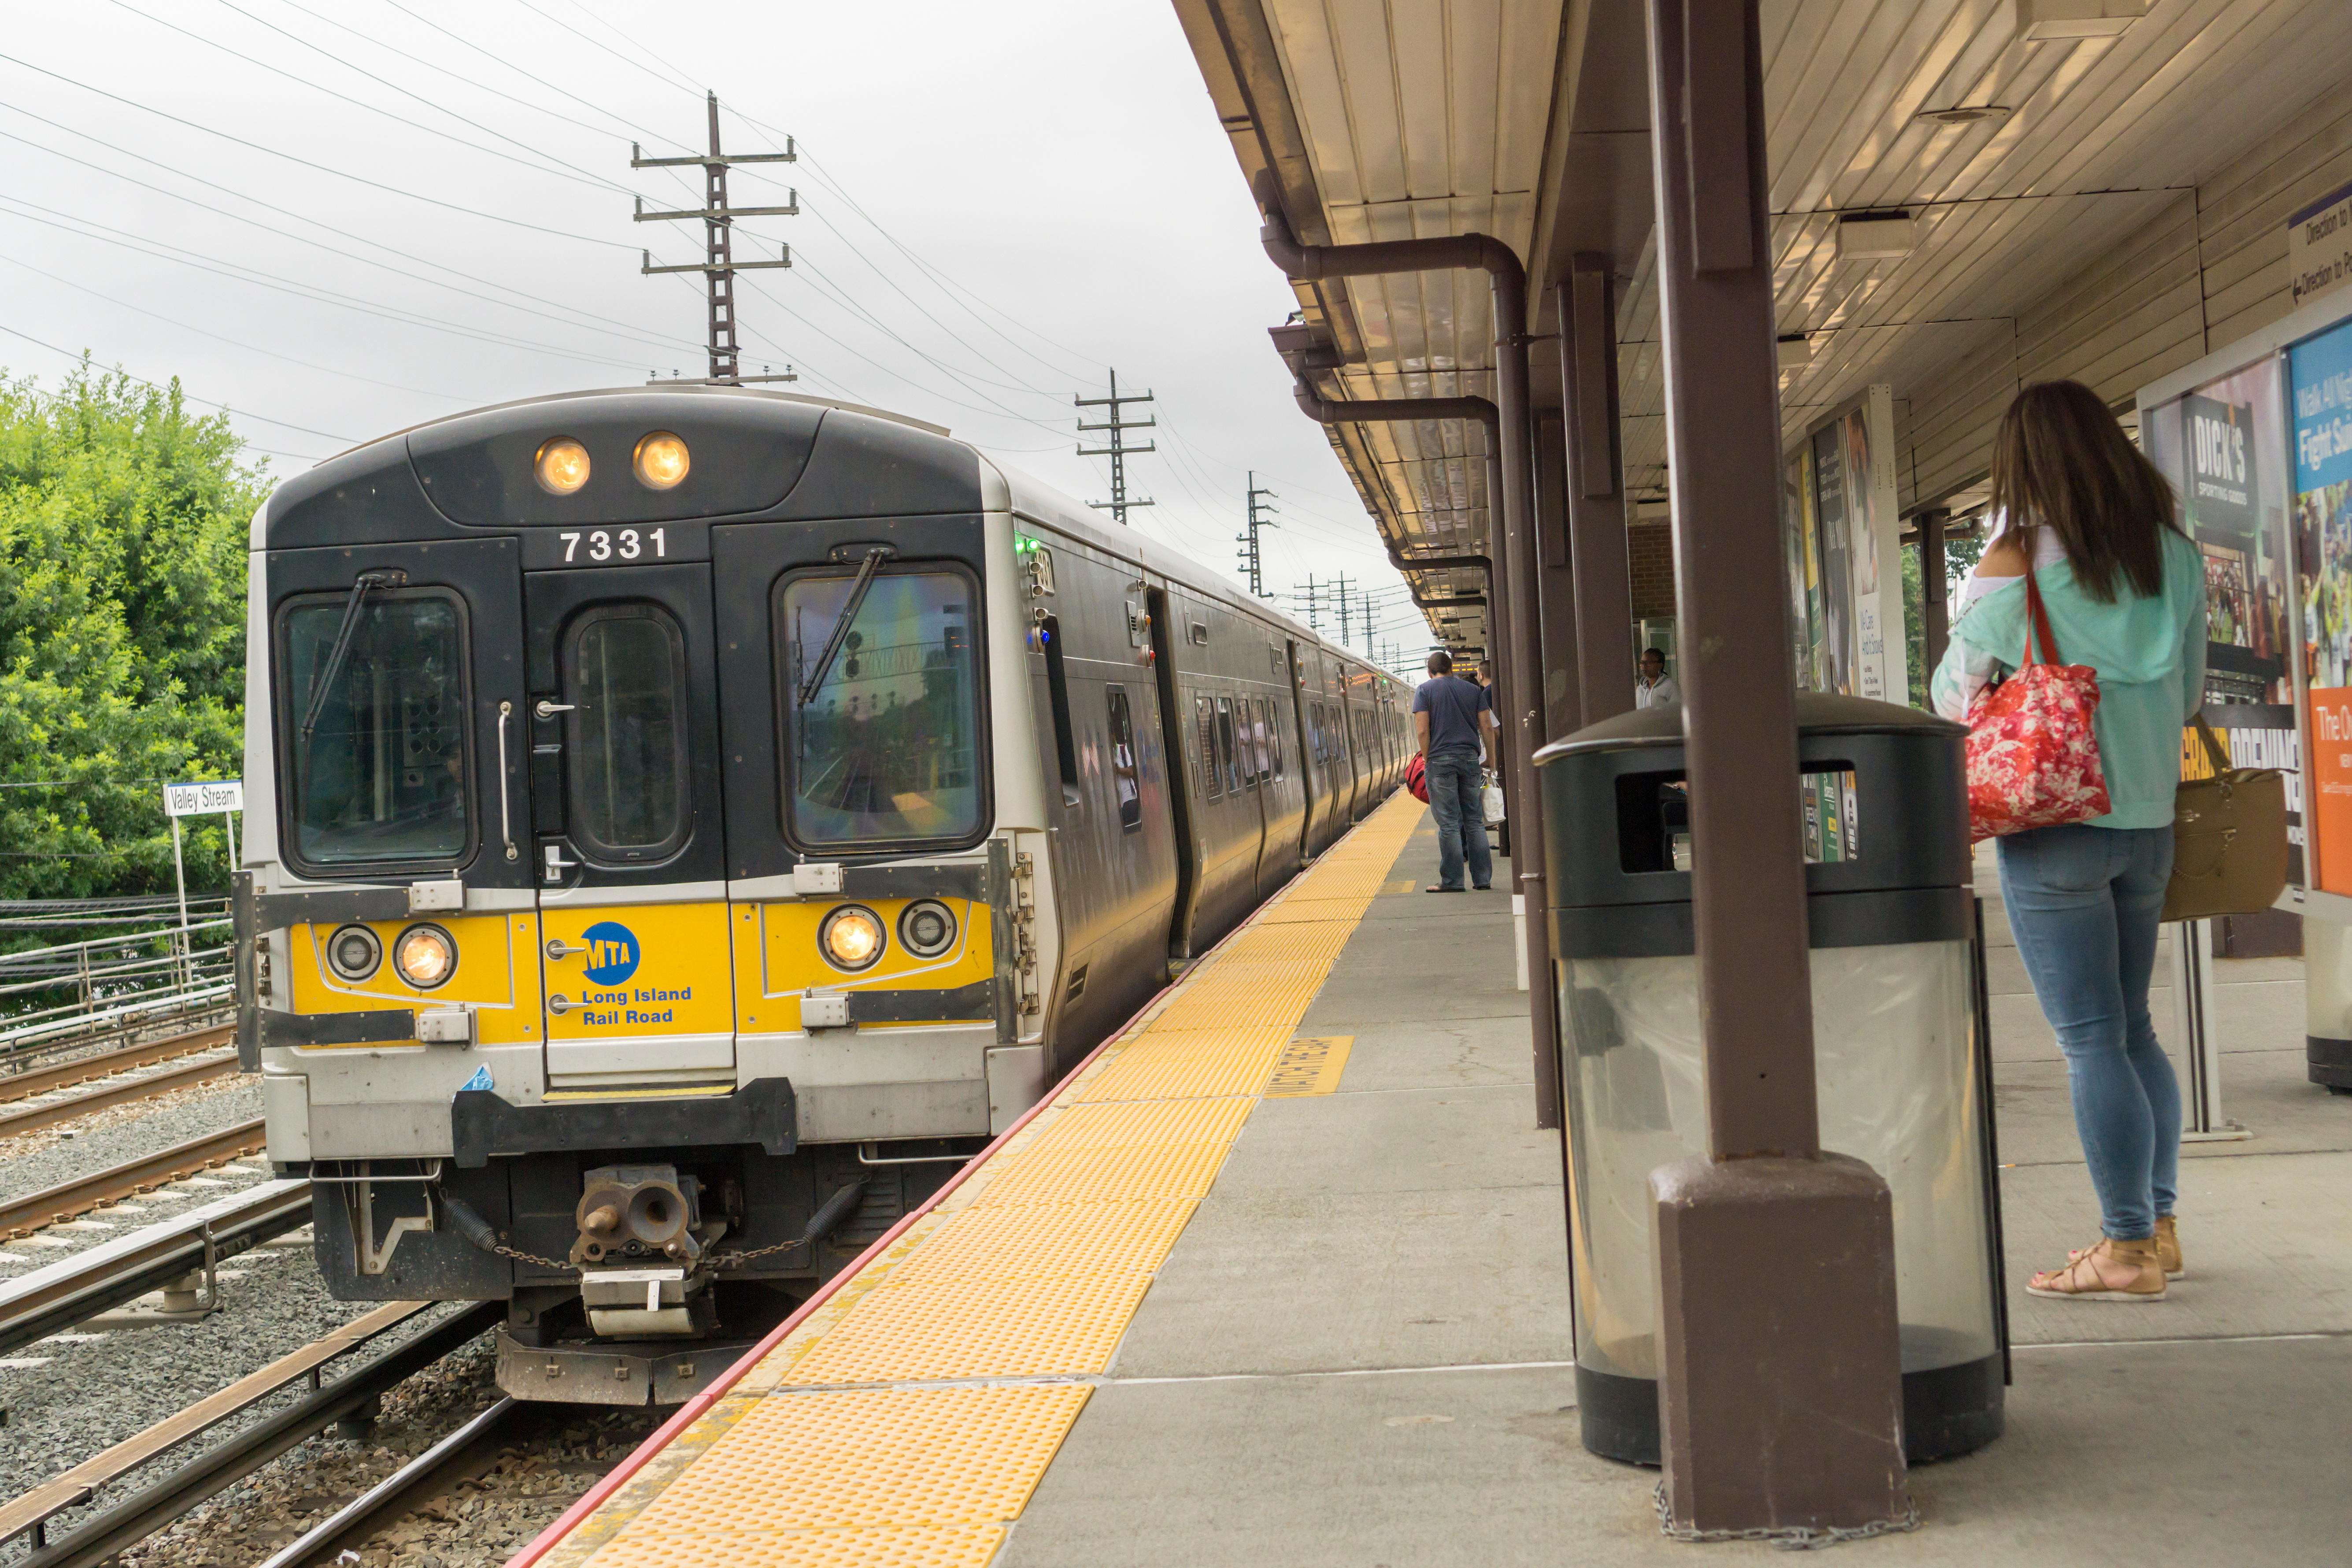 A Long Island Railroad (LIRR) commuter train arrives at the Valley Stream, Long Island station on Saturday, July 9, 2016. (© Richard B. Levine)